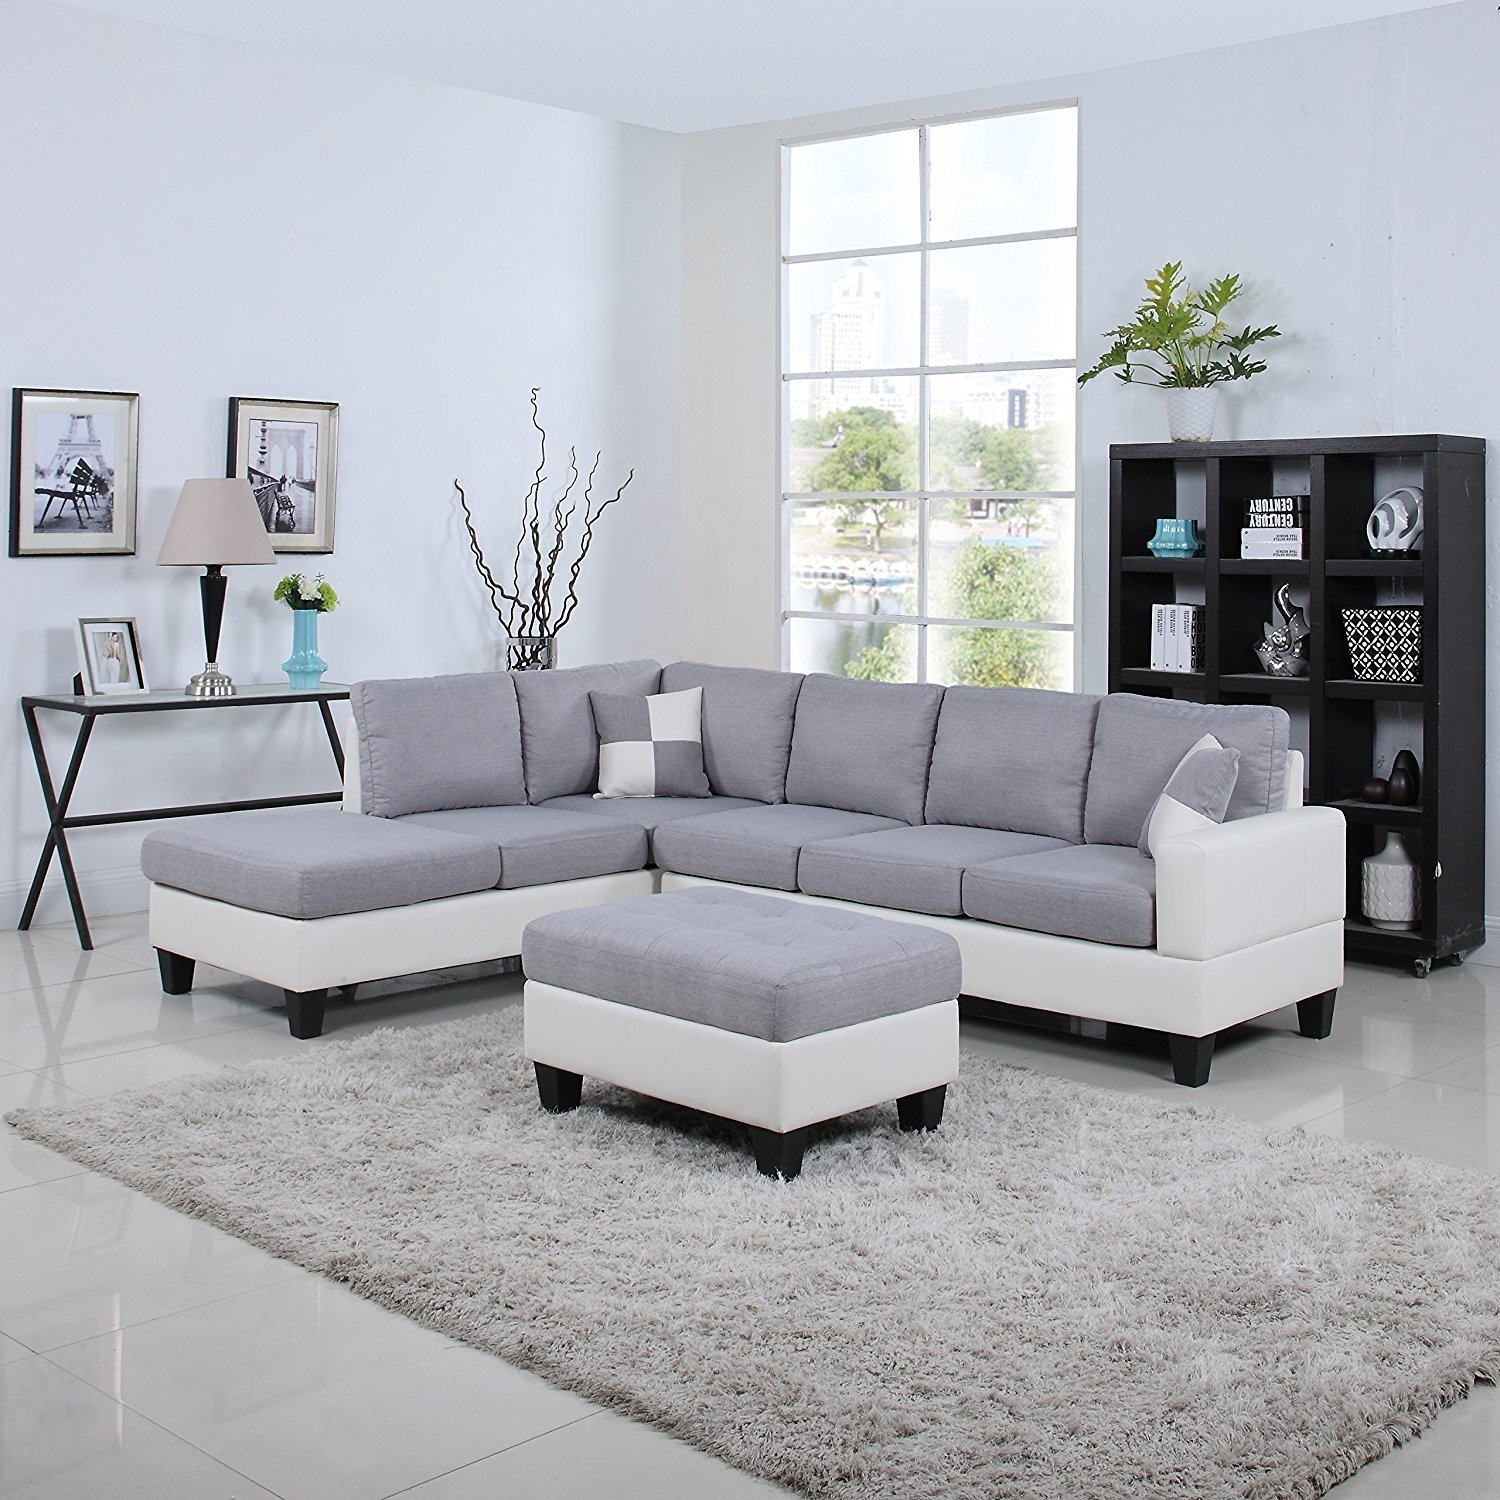 Details About Clic 2 Tone Large Fabric Bonded Leather Sectional Sofa Light Grey White